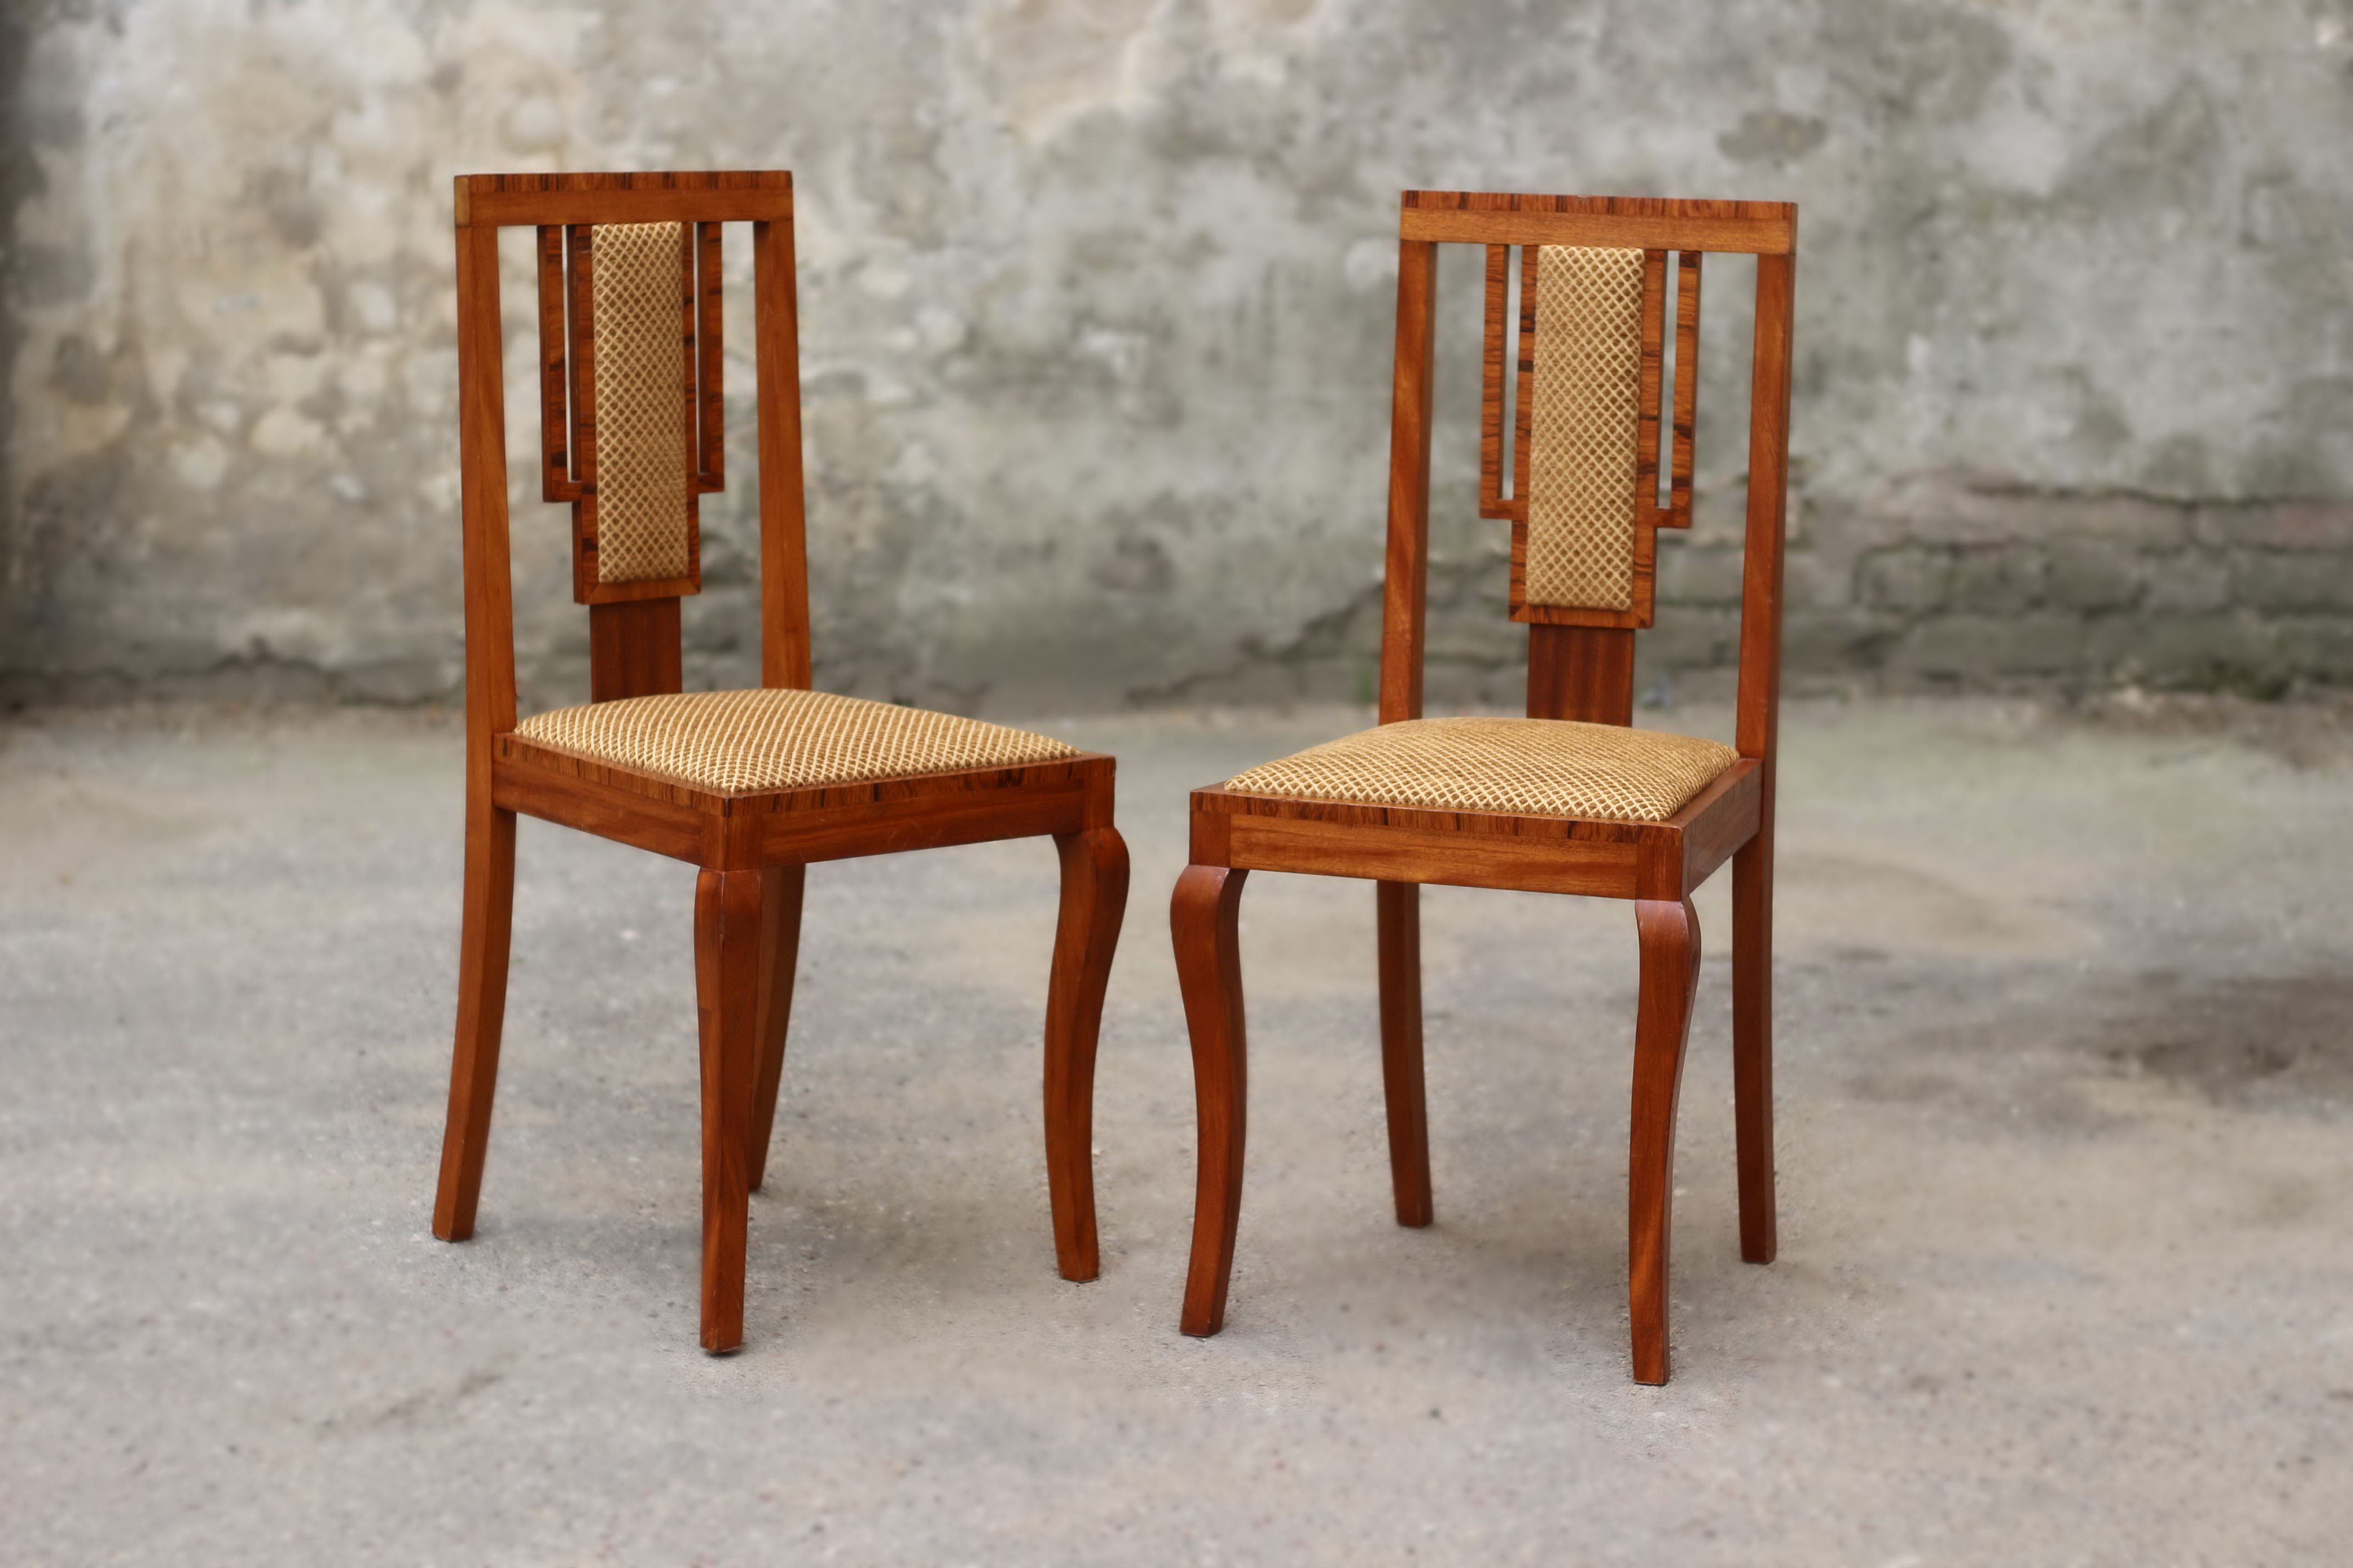 wood chair parts suppliers cover rentals nashville tn styles of antique side chairs